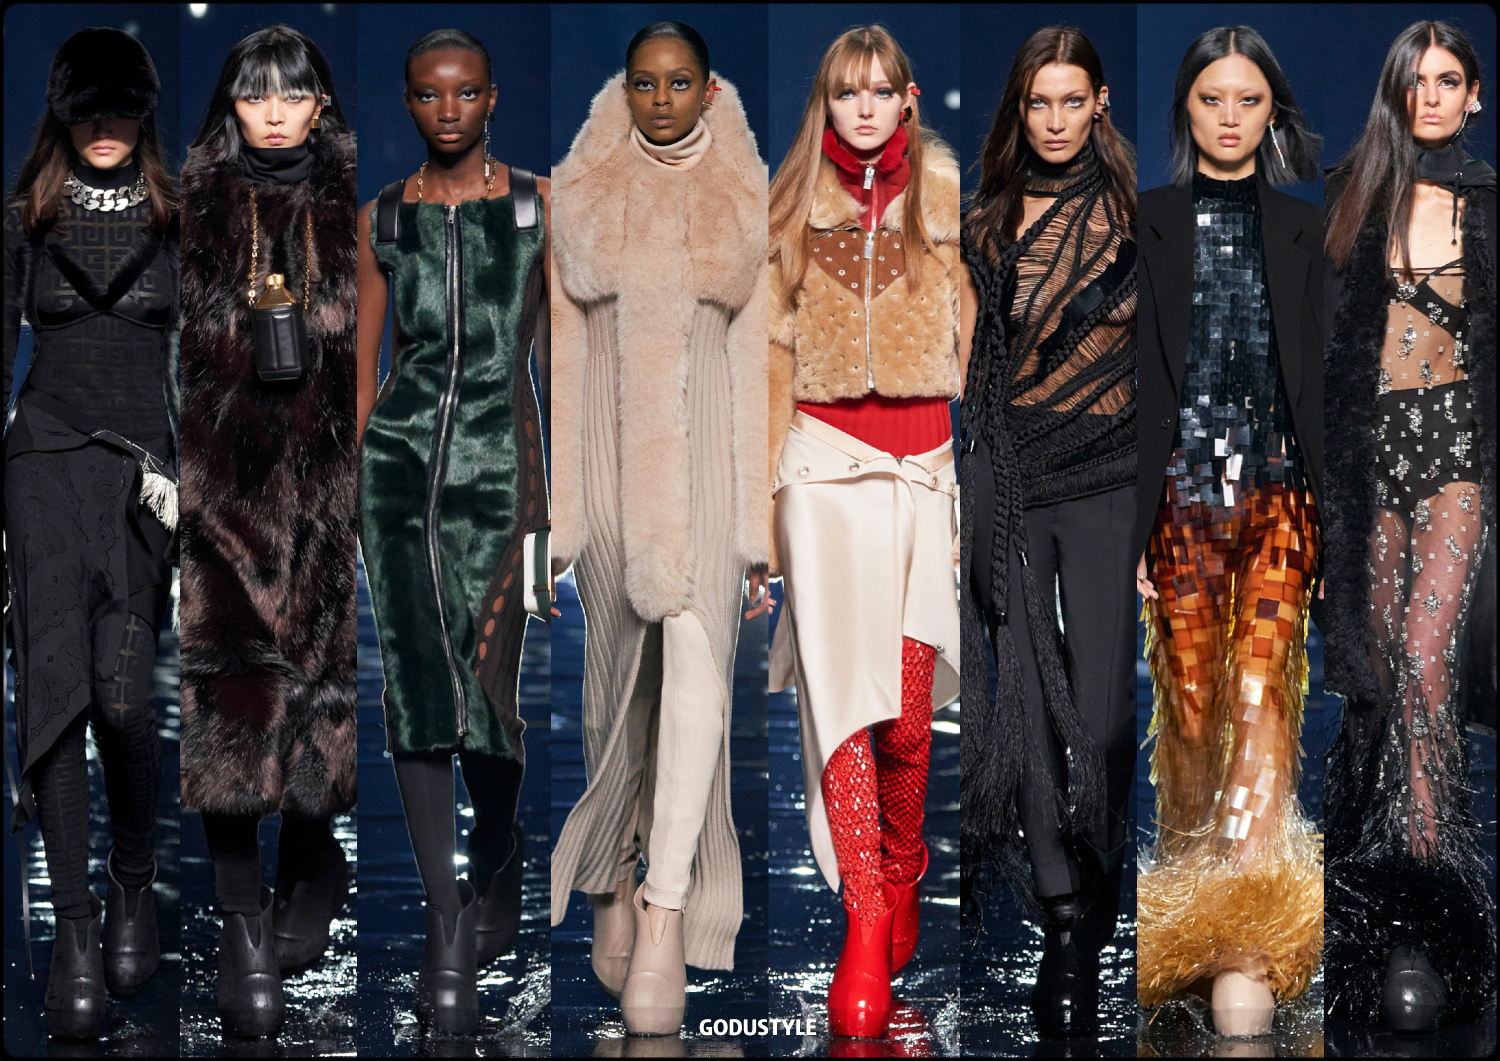 givenchy-fall-2021-winter-2022-fashion-look-style-details-accessories-review-moda-invierno-godustyle